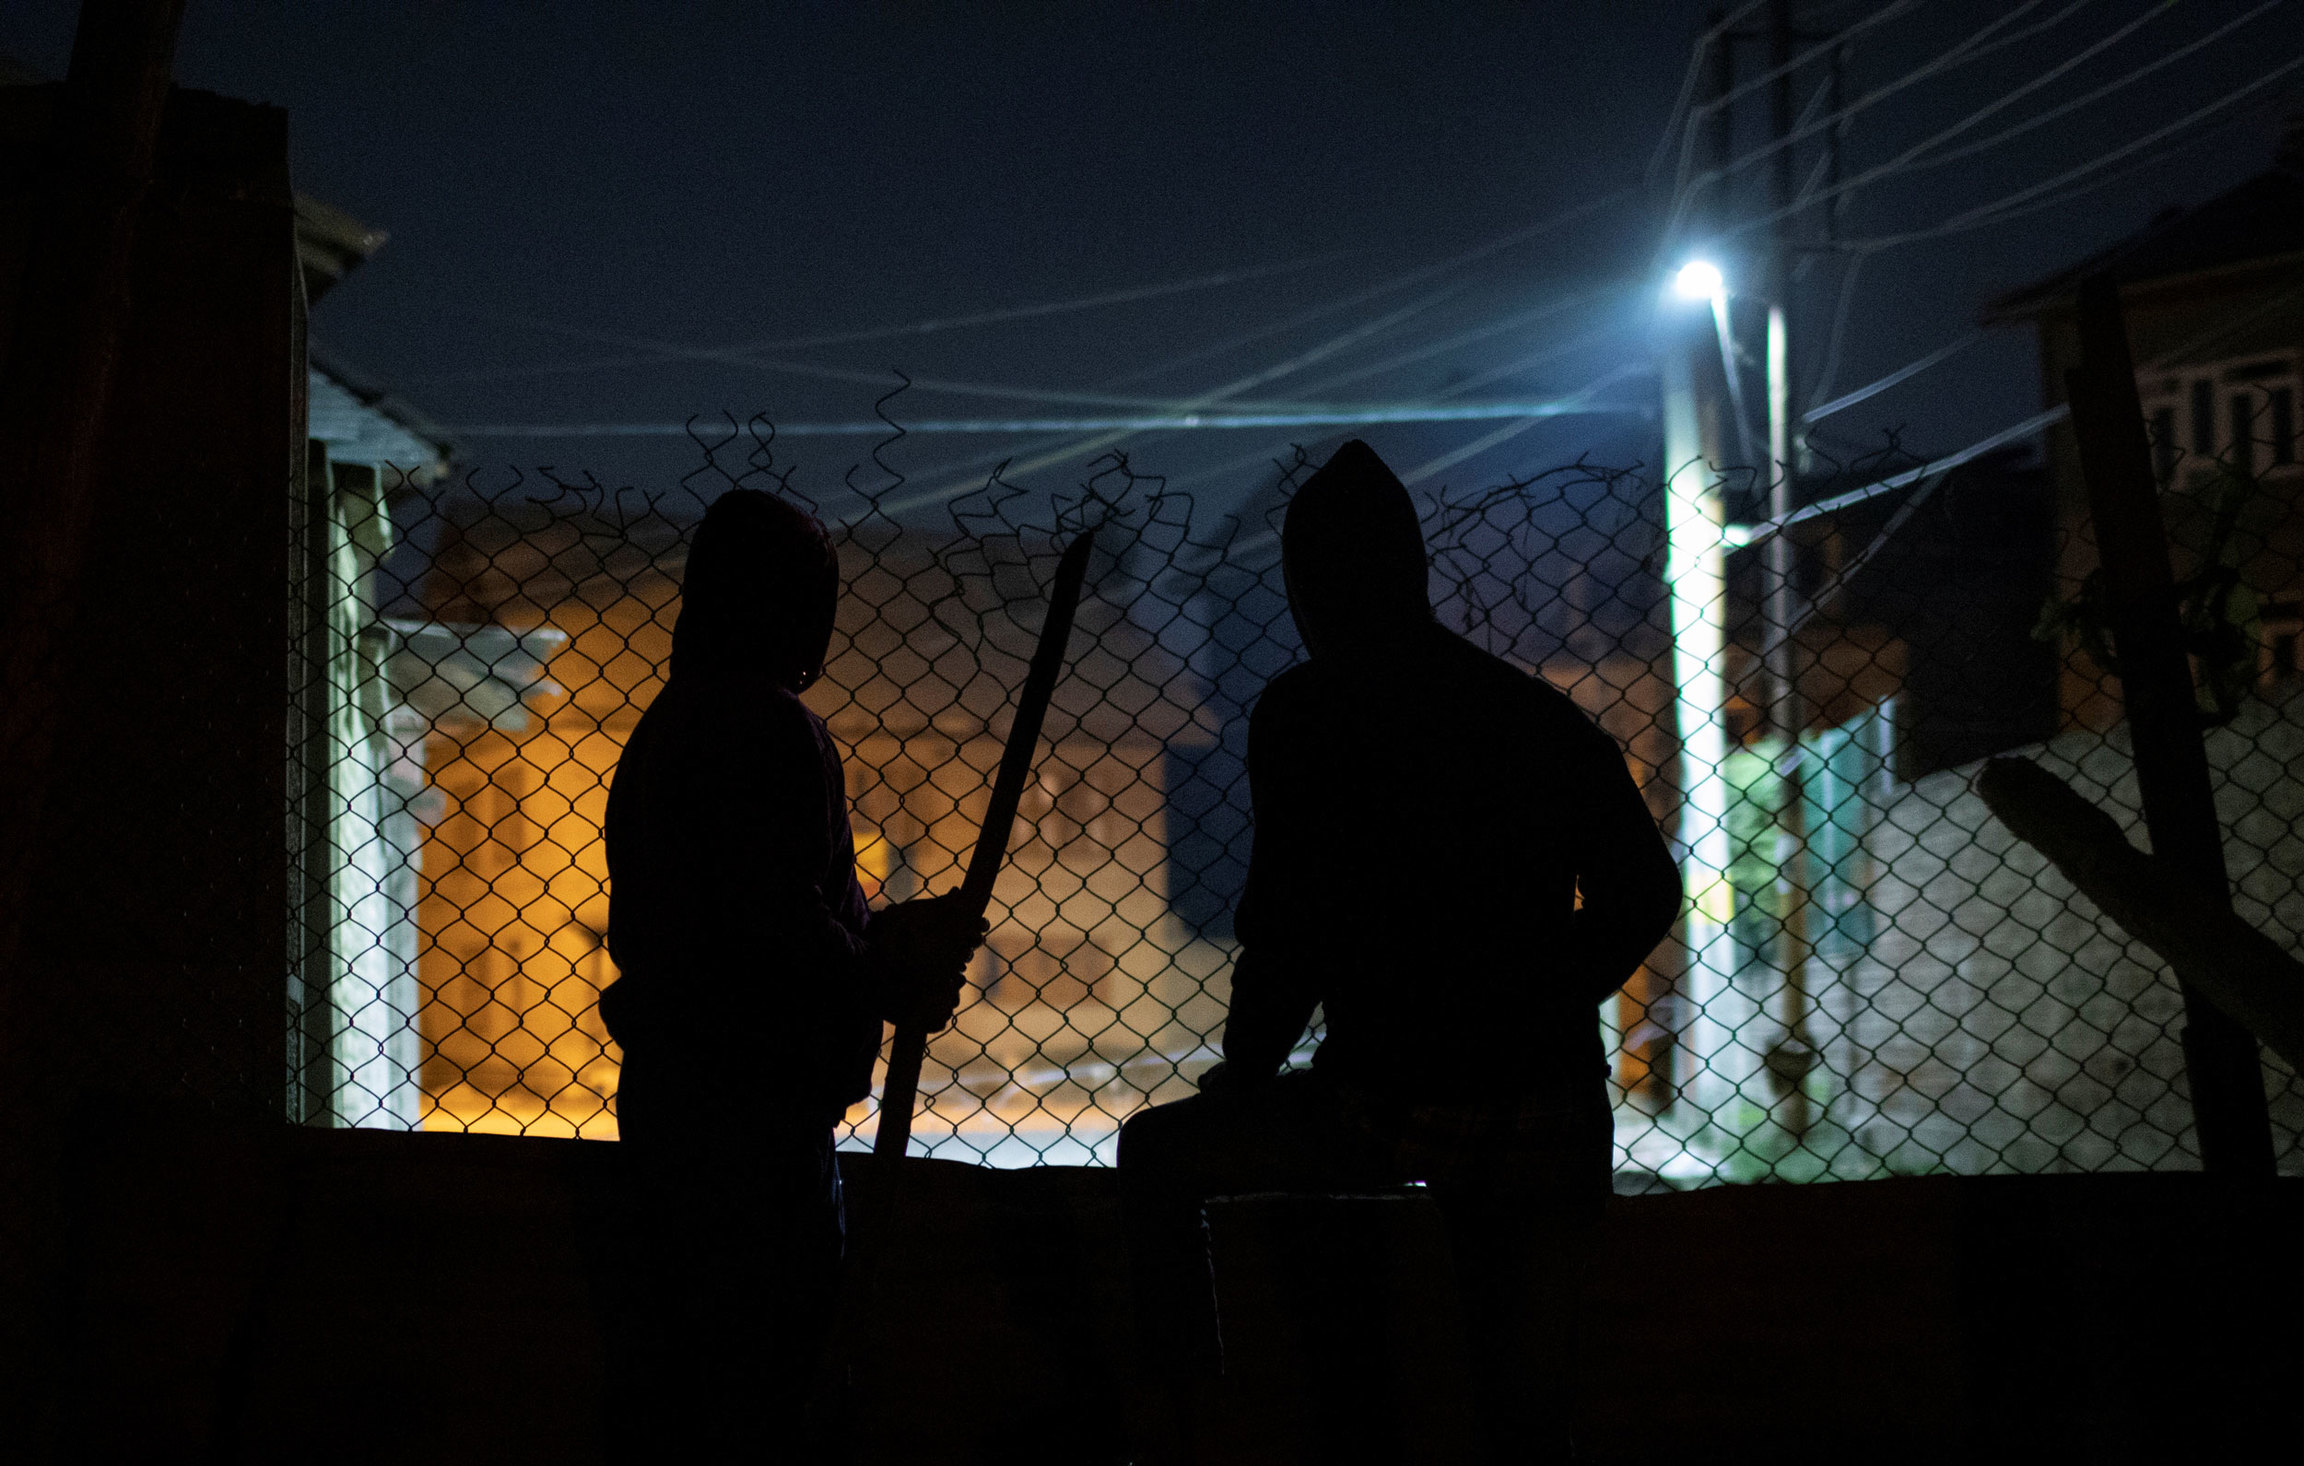 Two men are shown in shadow with a chain link fence in front of them with only the light of a streetlamp.